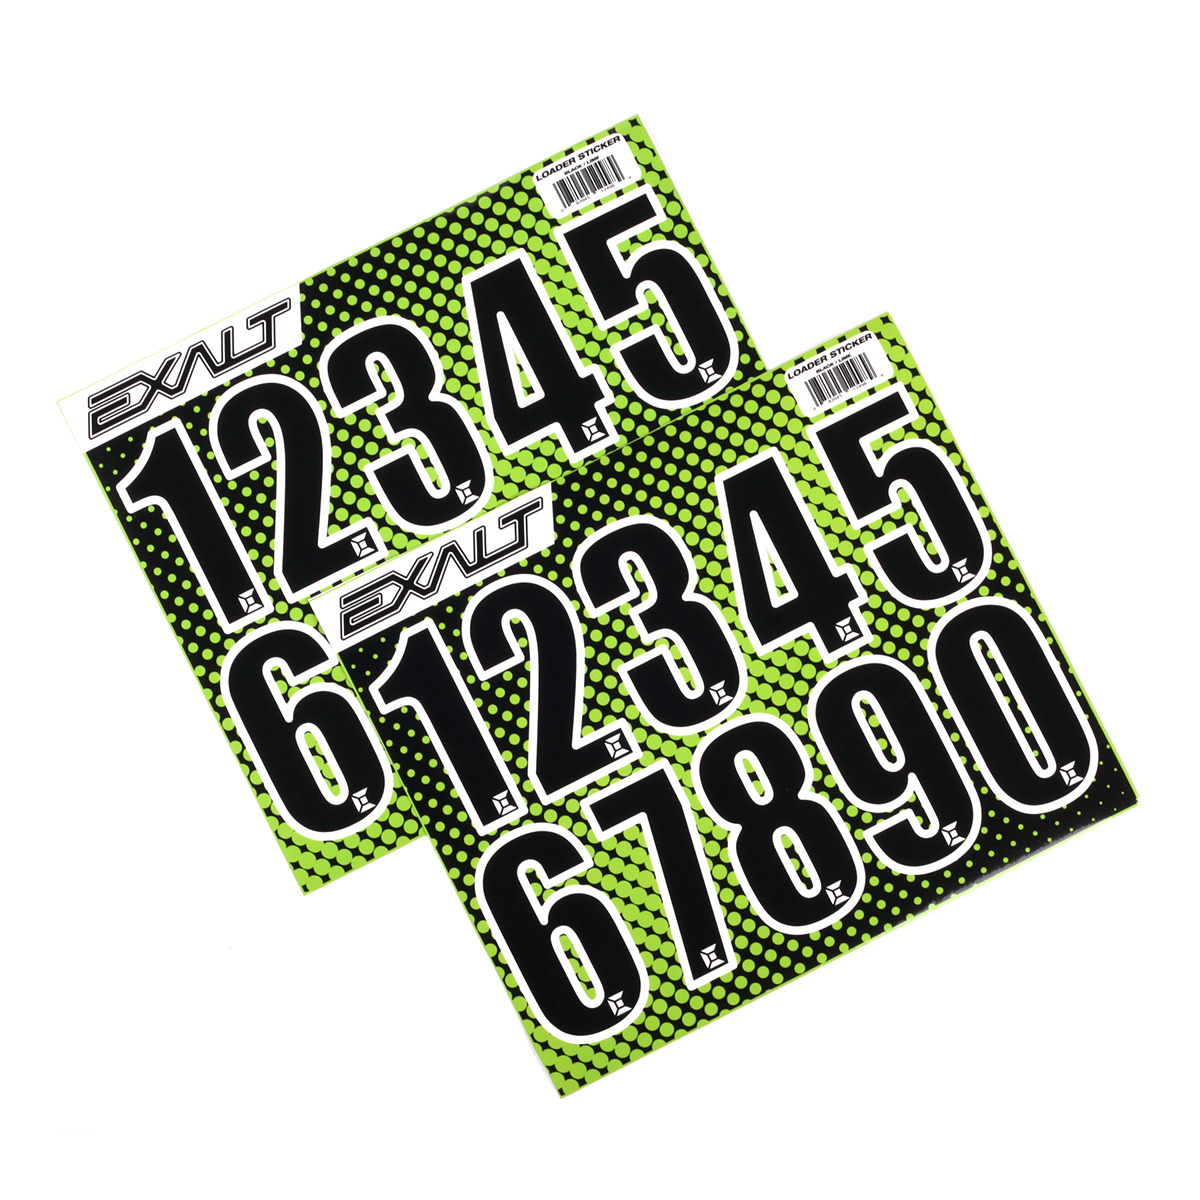 Exalt Paintball Loader Number Stickers - Black